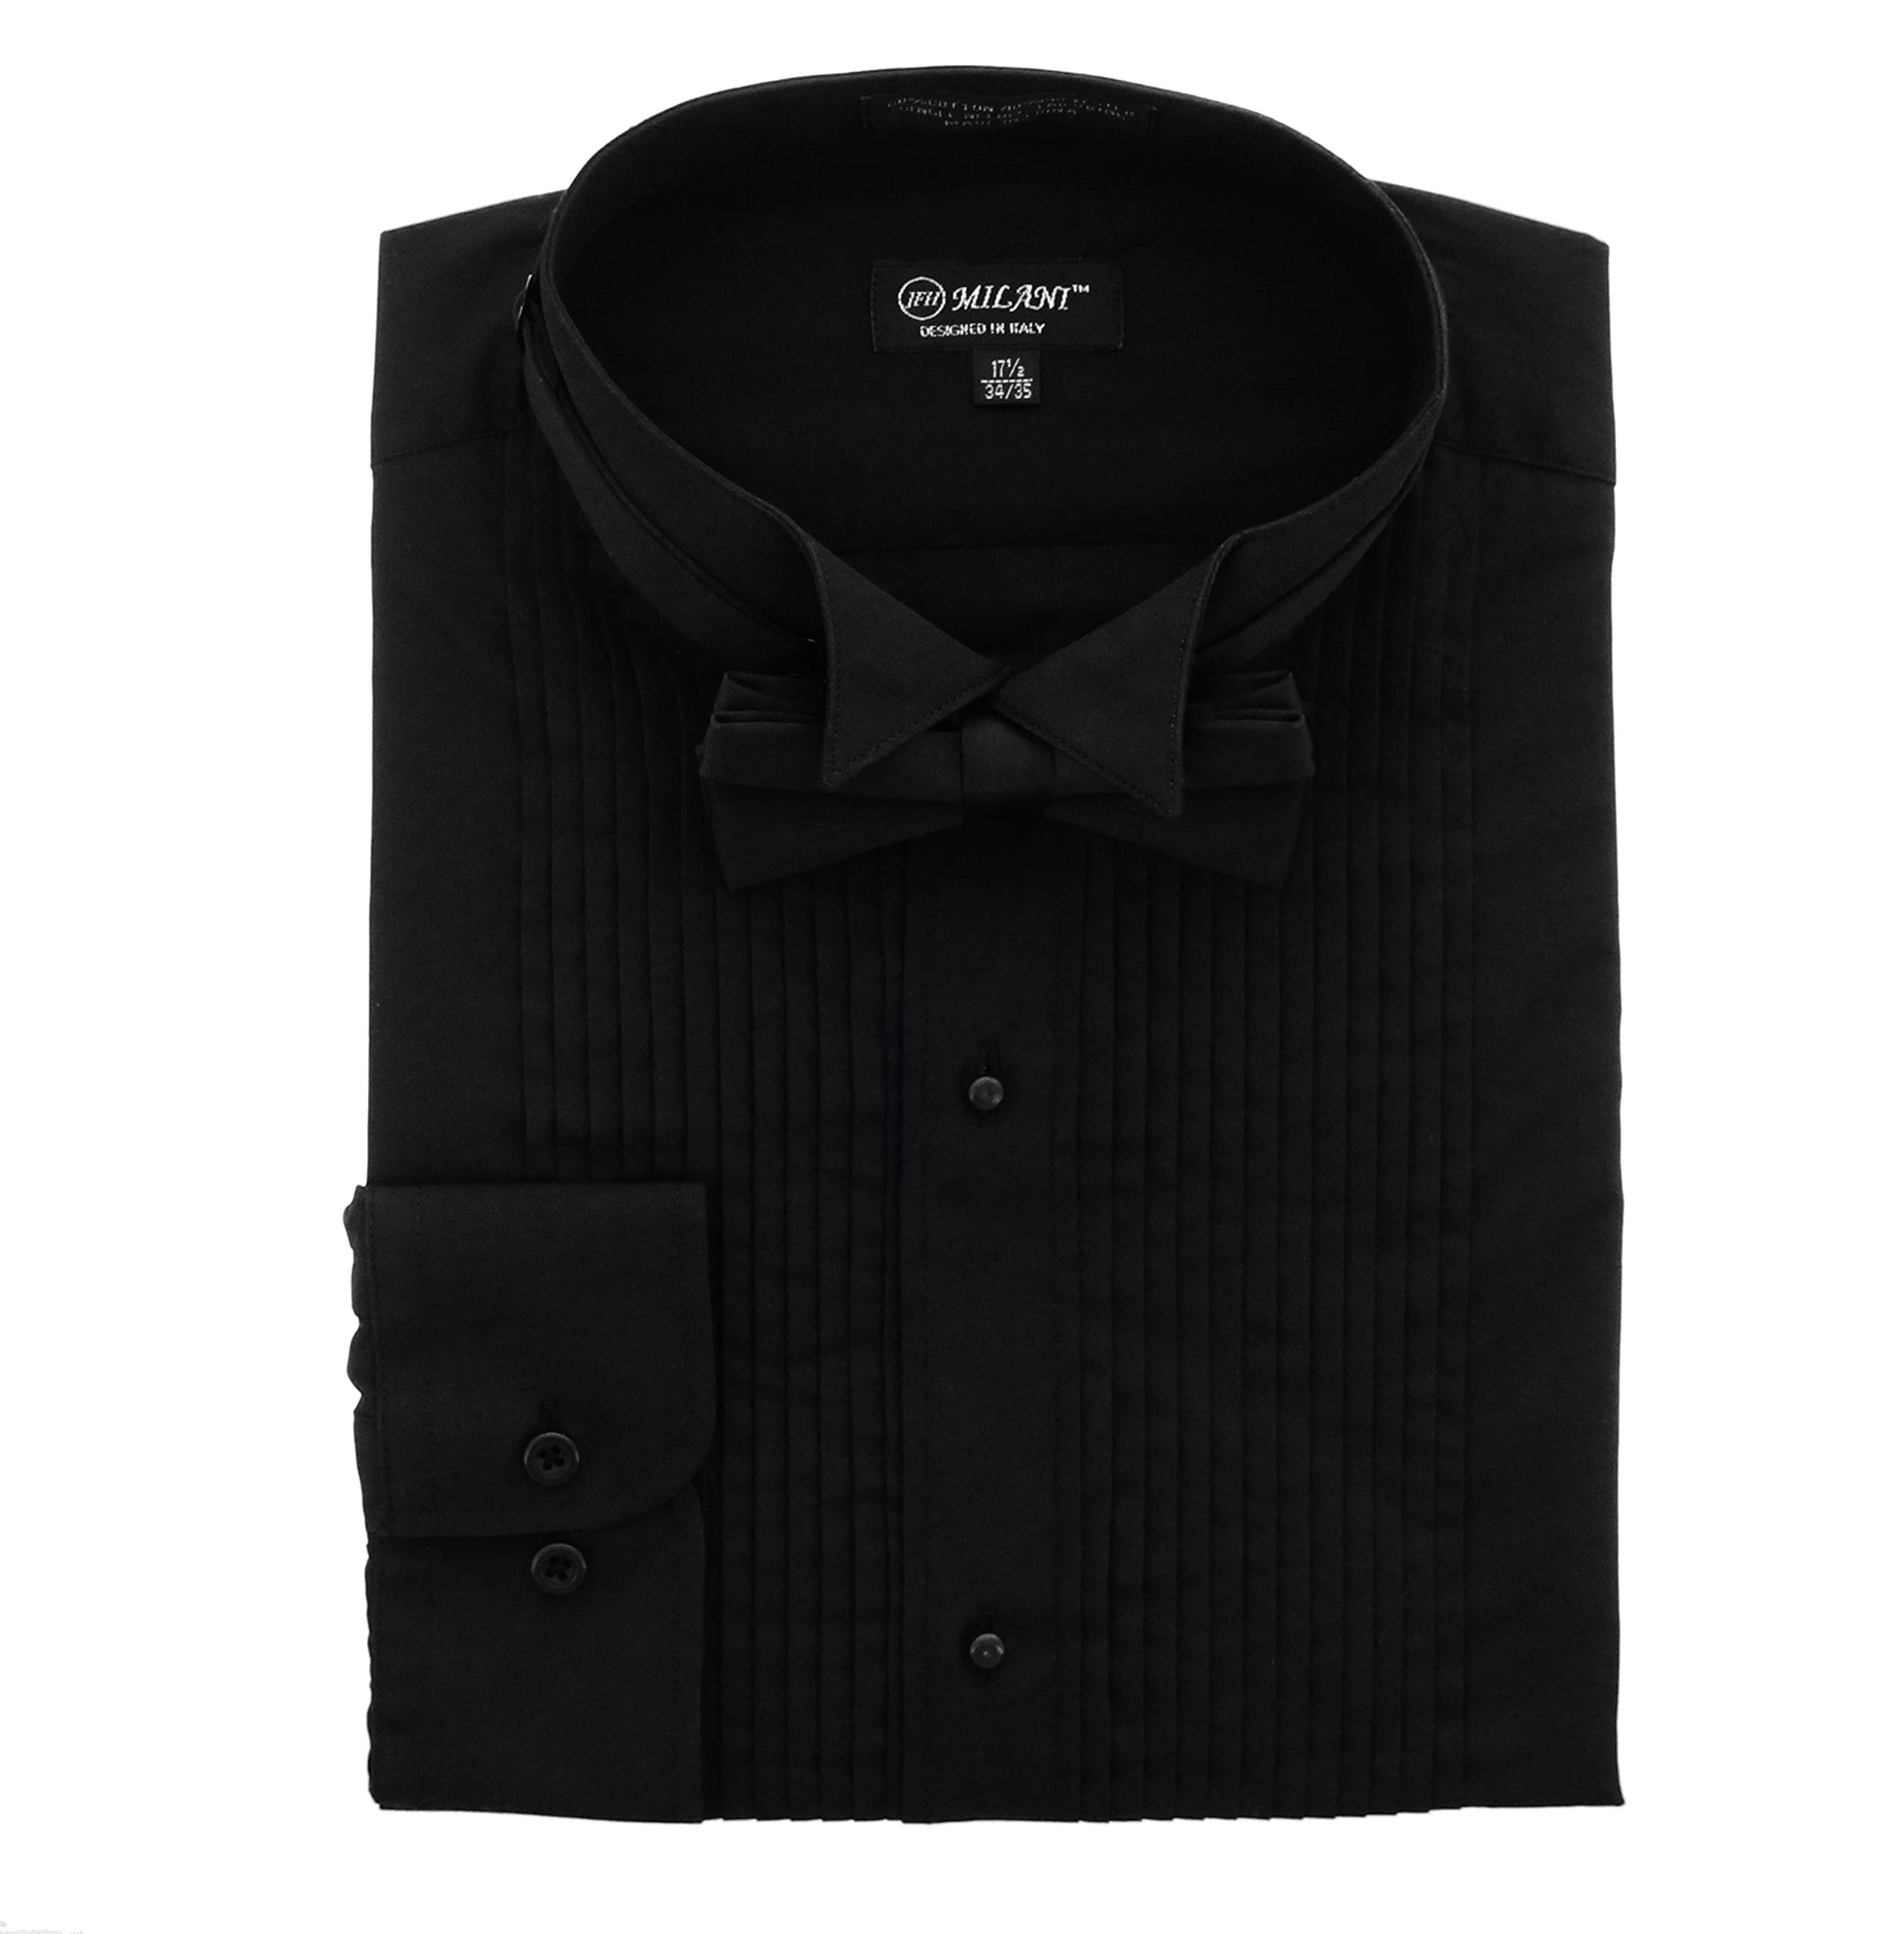 Milani Wing Collar Tuxedo Shirt with Convertible Cuffs and Bow Tie (Black) (16.5'' Neck 34/35) by Milani